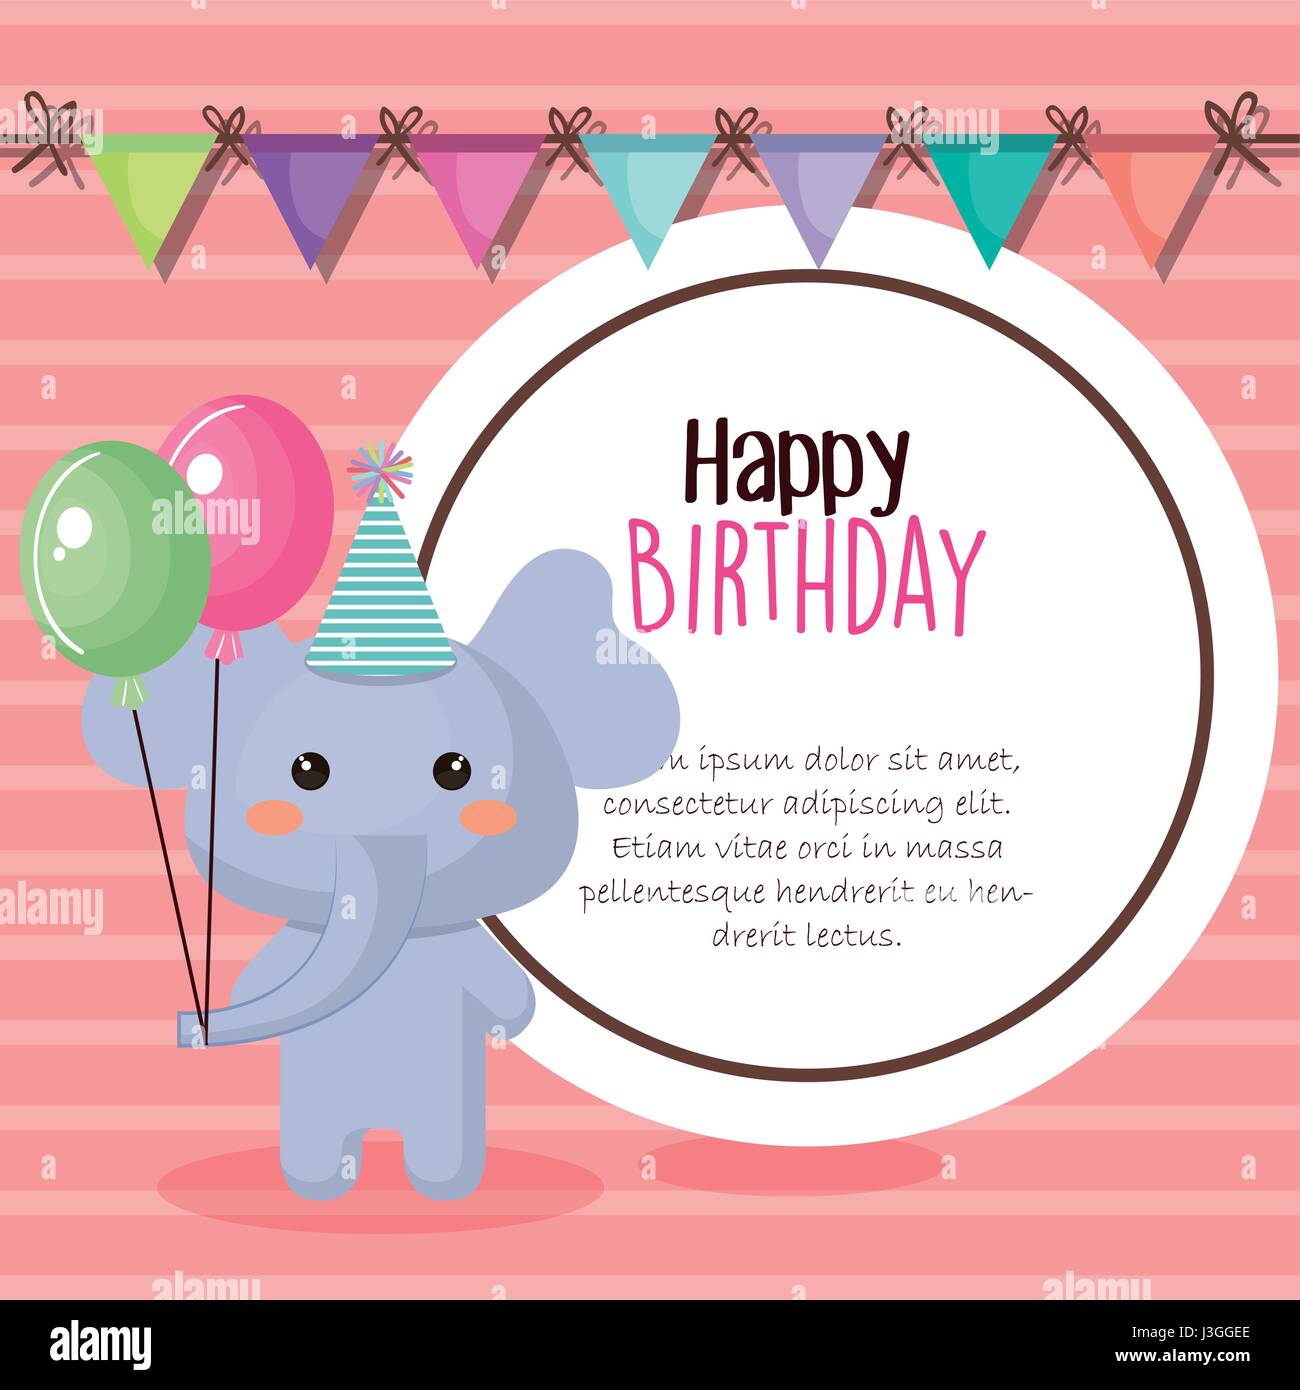 happy birthday card with tender animal - Stock Image